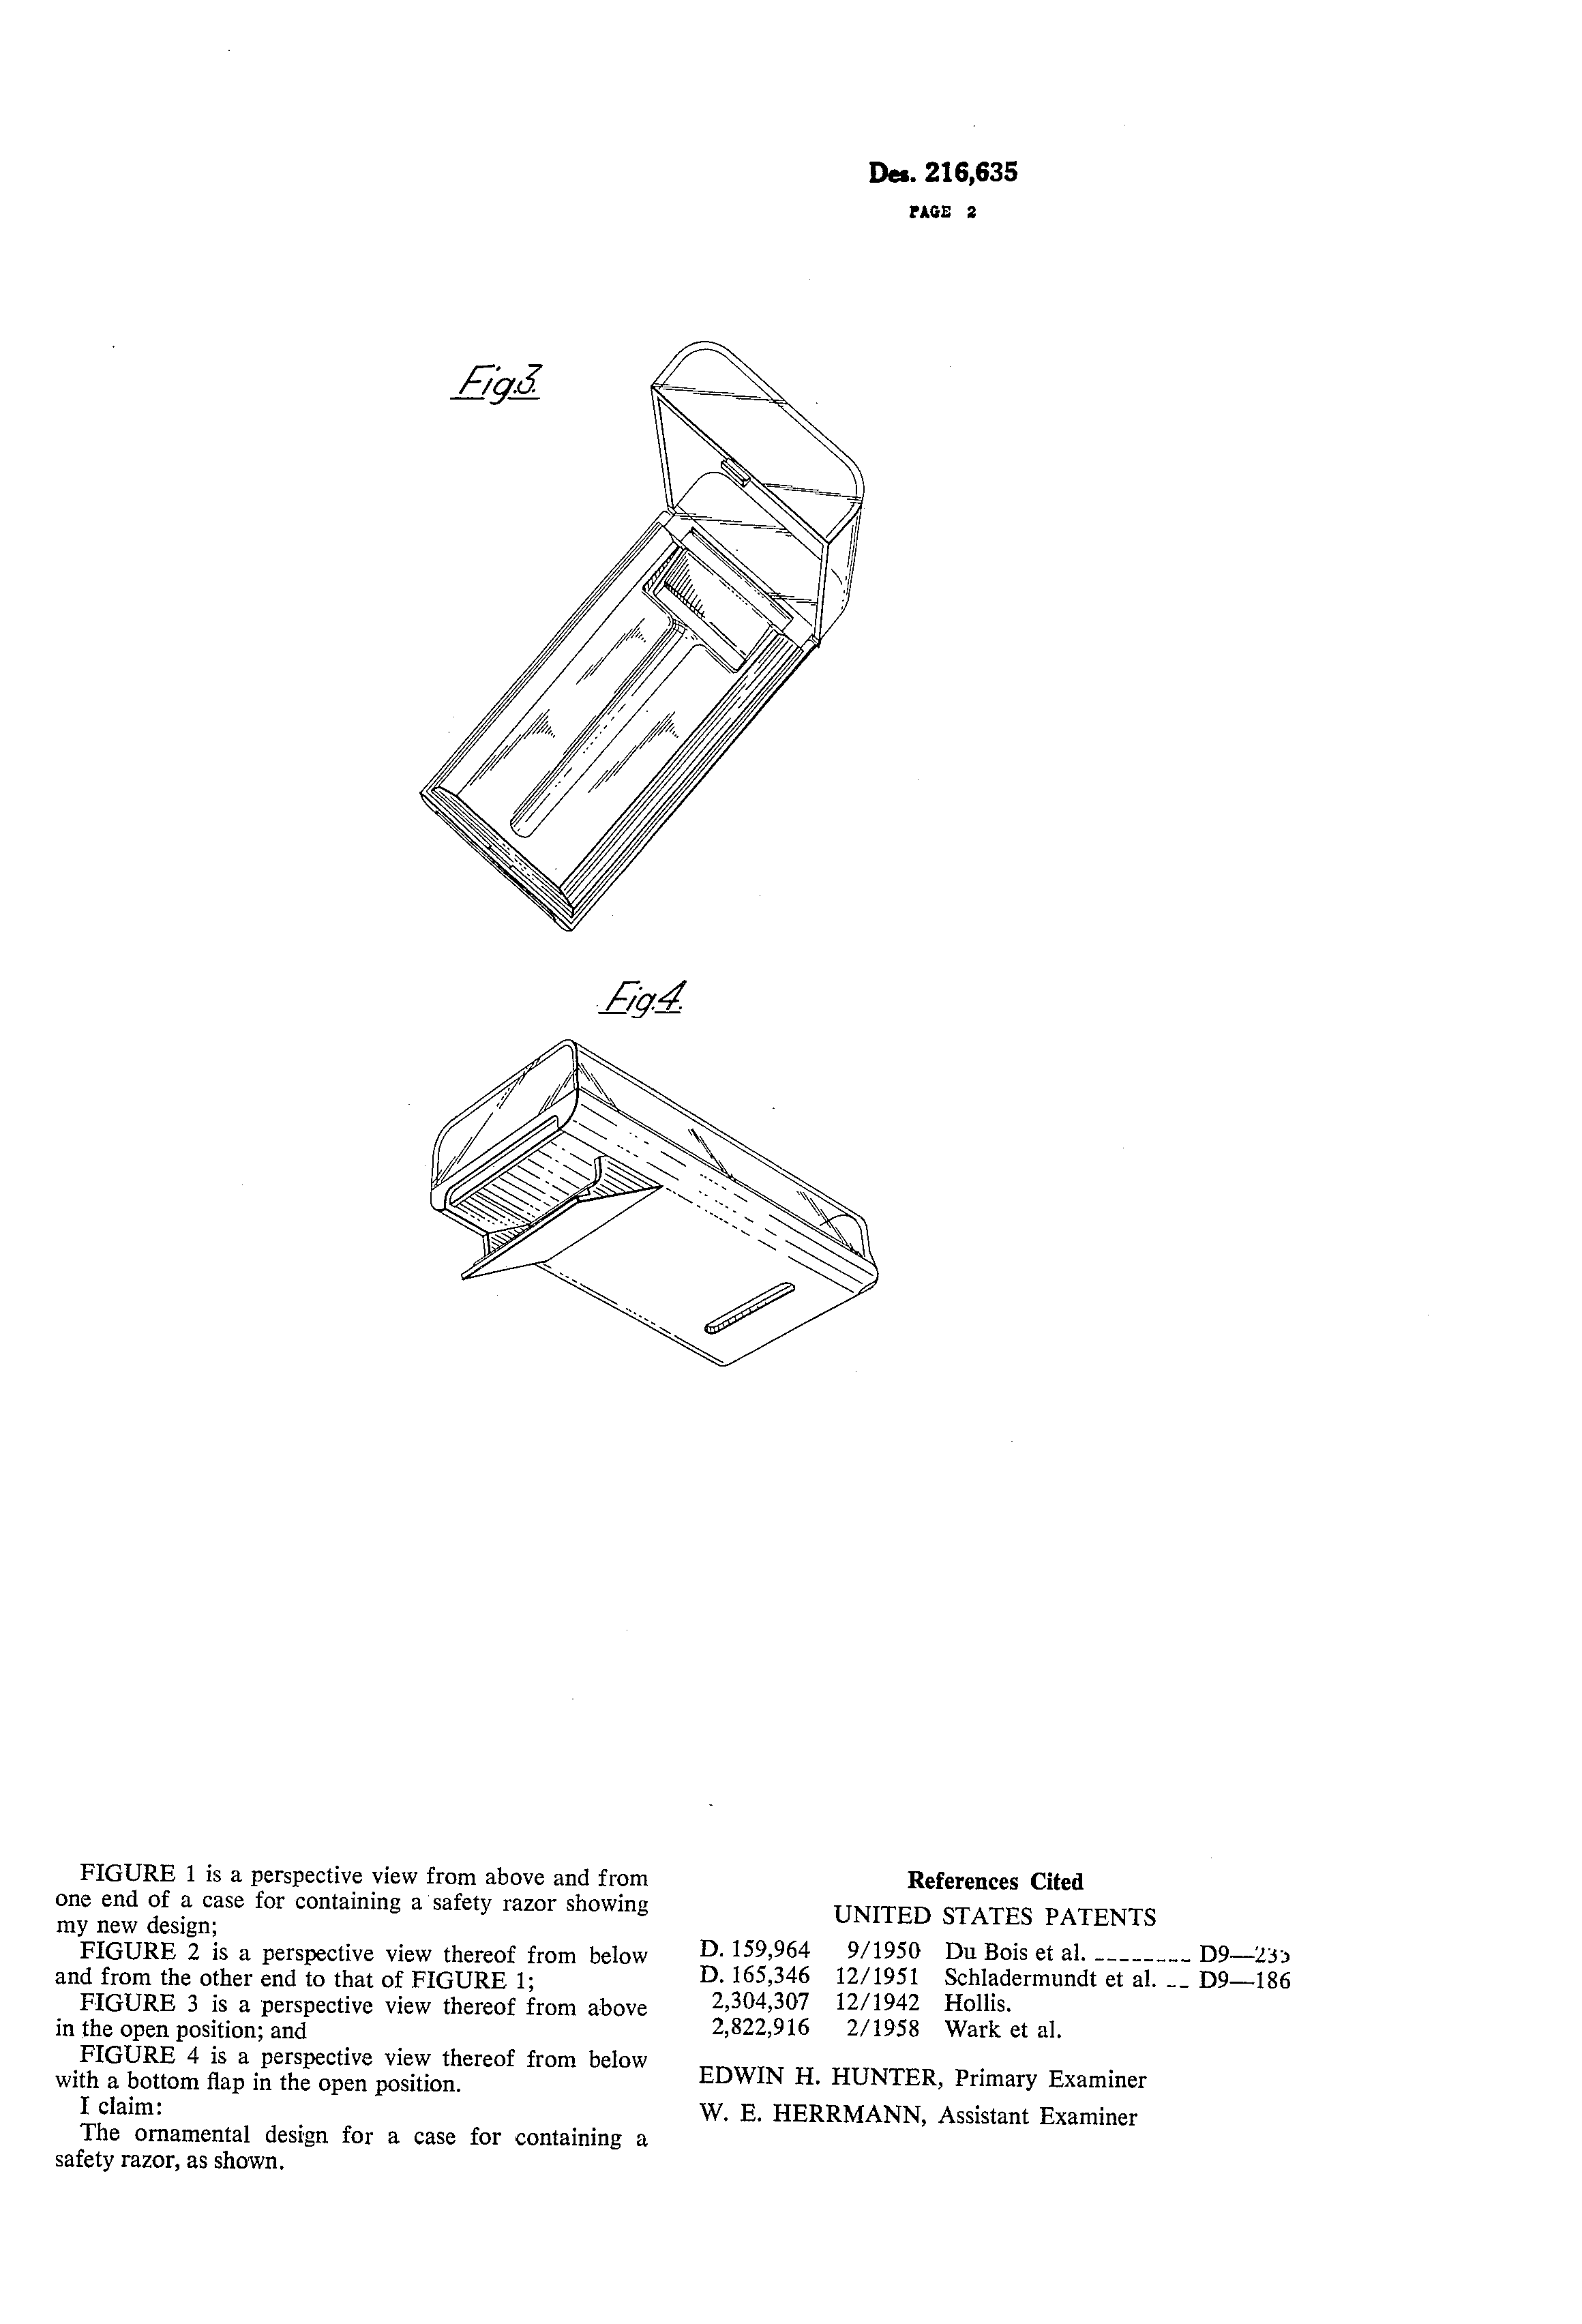 [Image: USD216635-1.png]